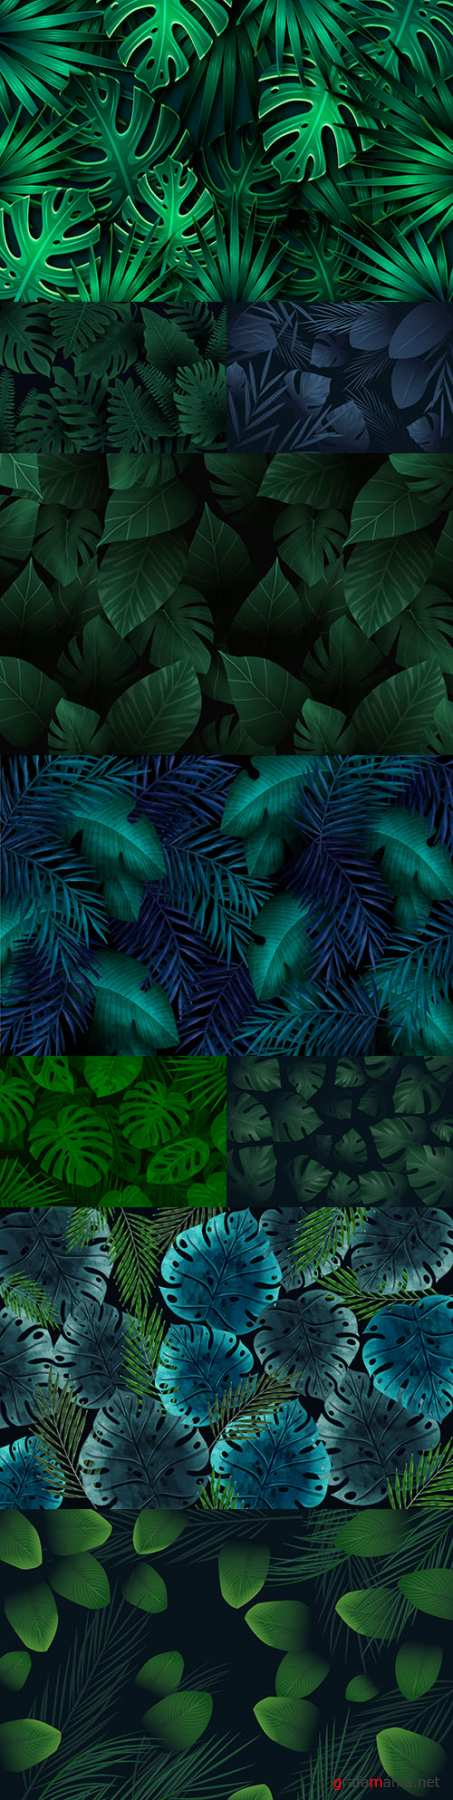 Tropical green leaves decorative background